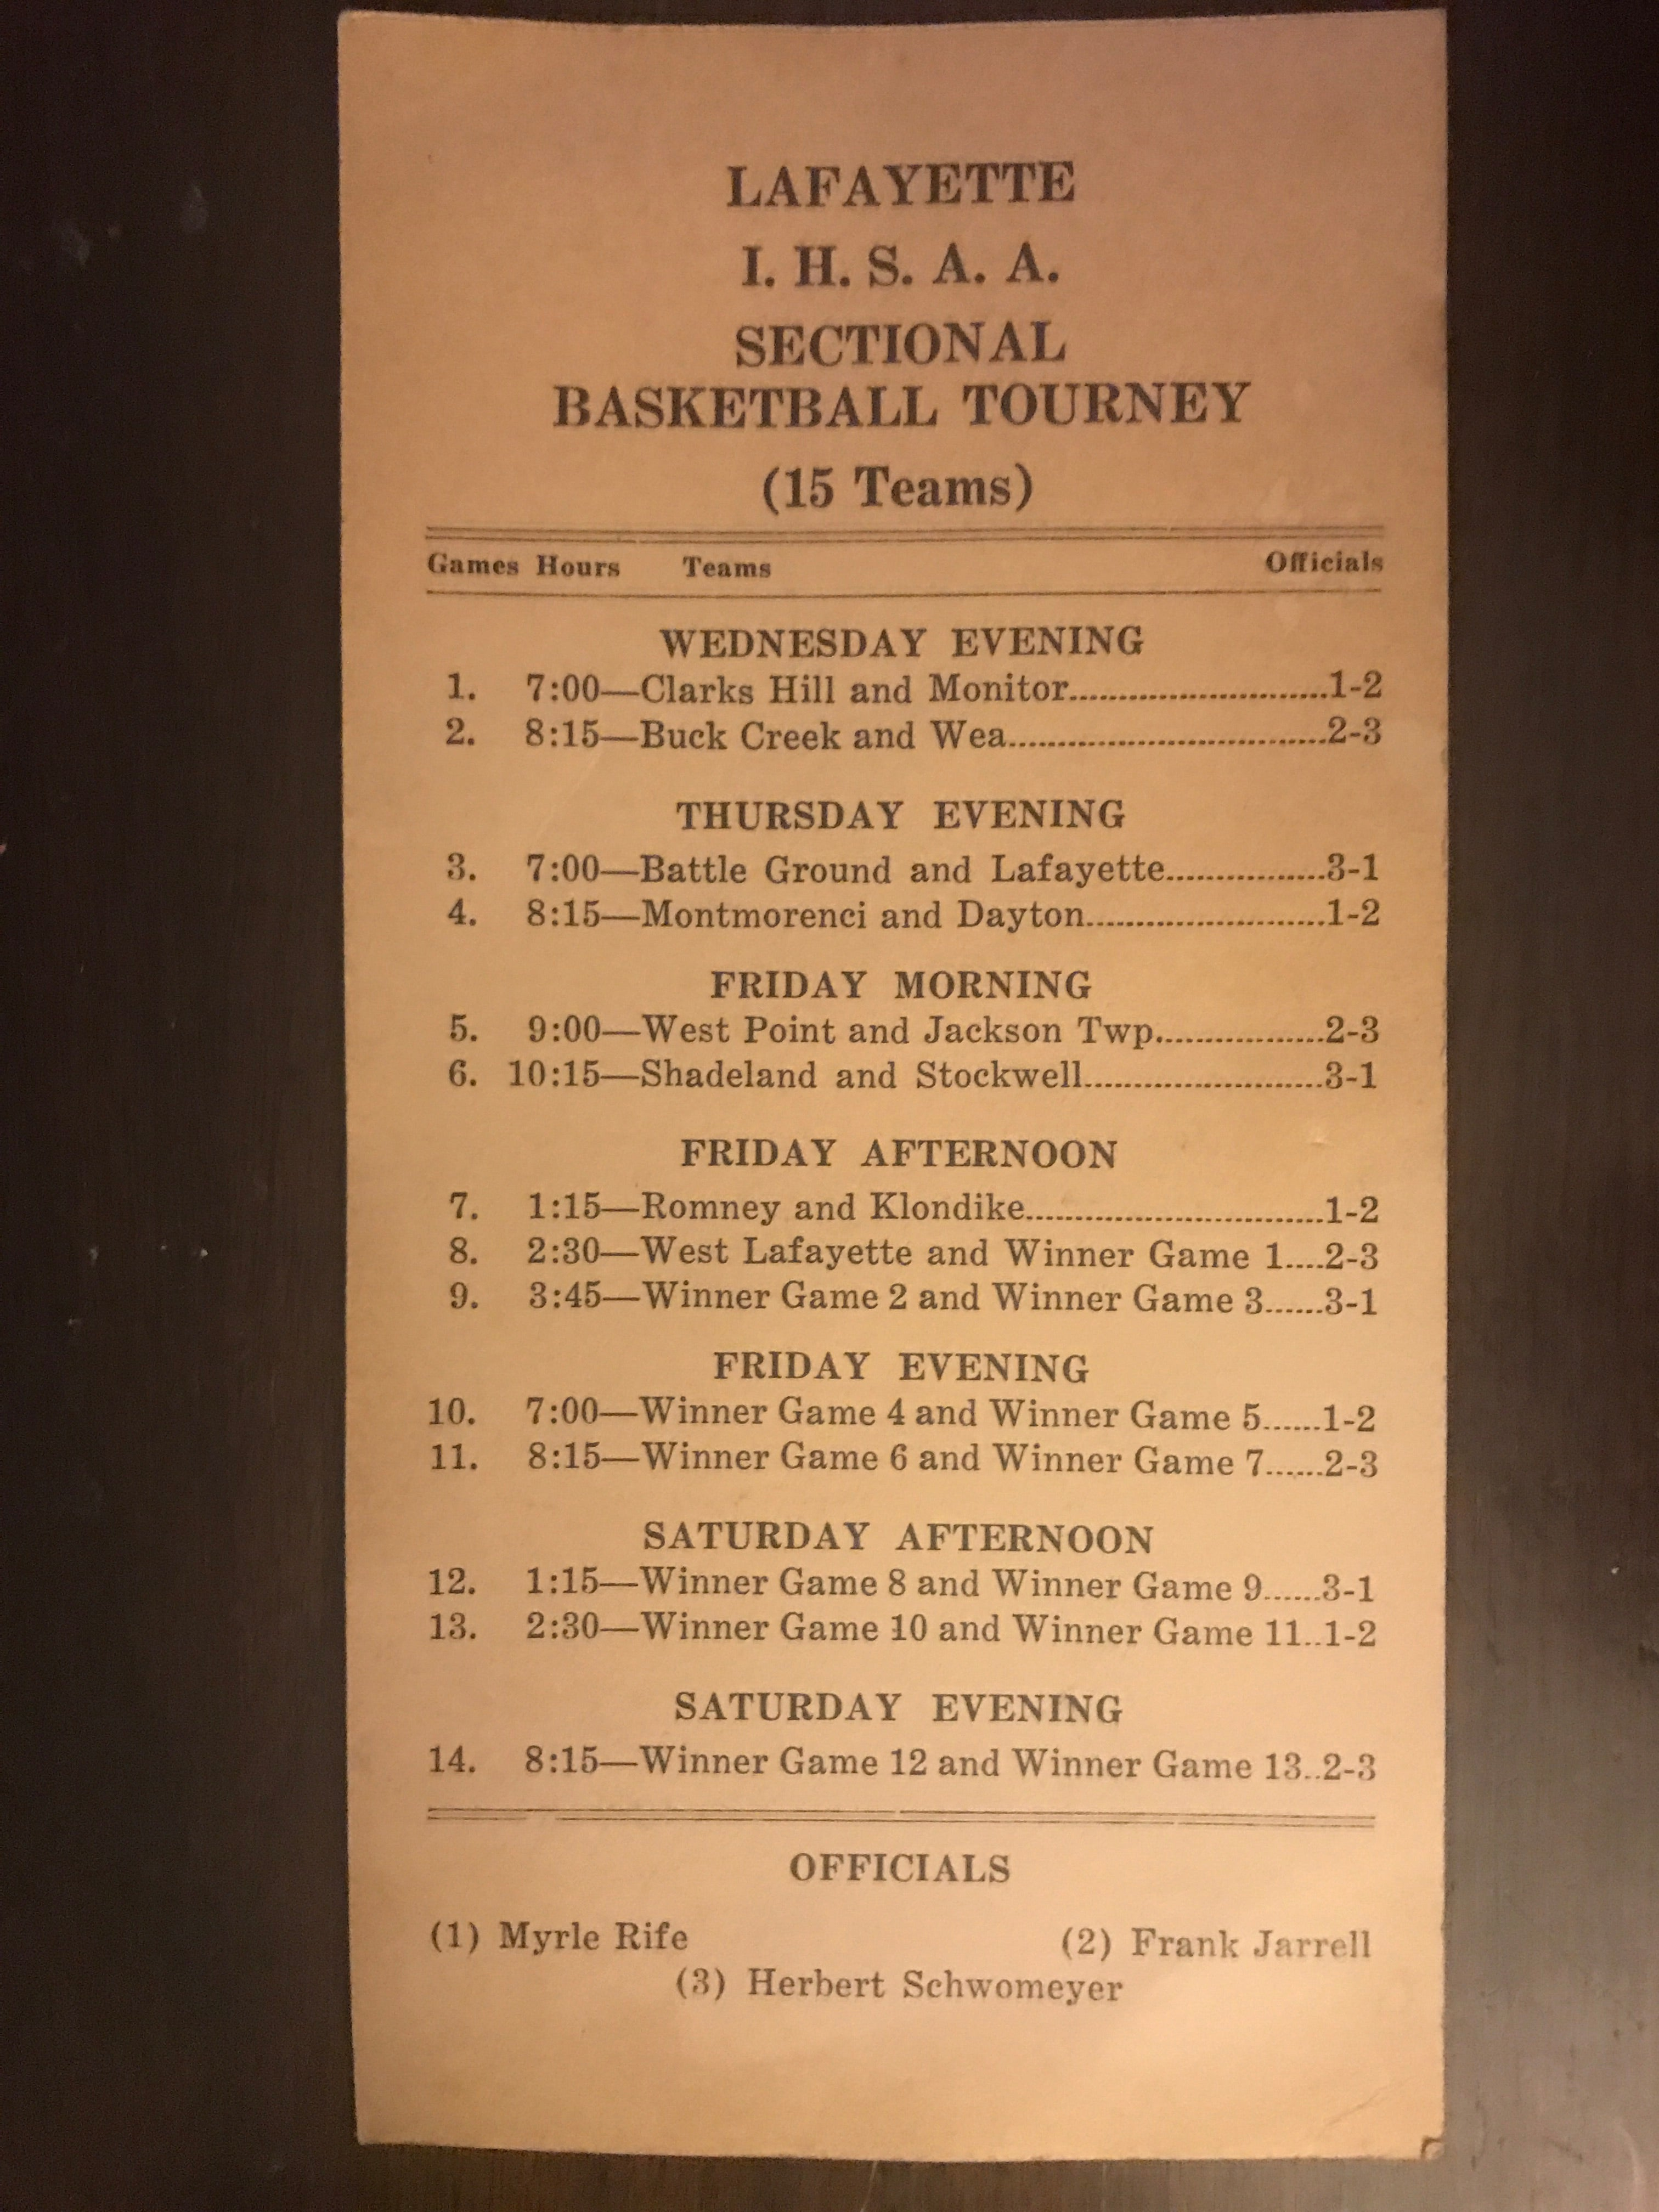 1948 Lafayette, Indiana High School Basketball Sectional Program - Vintage Indy Sports